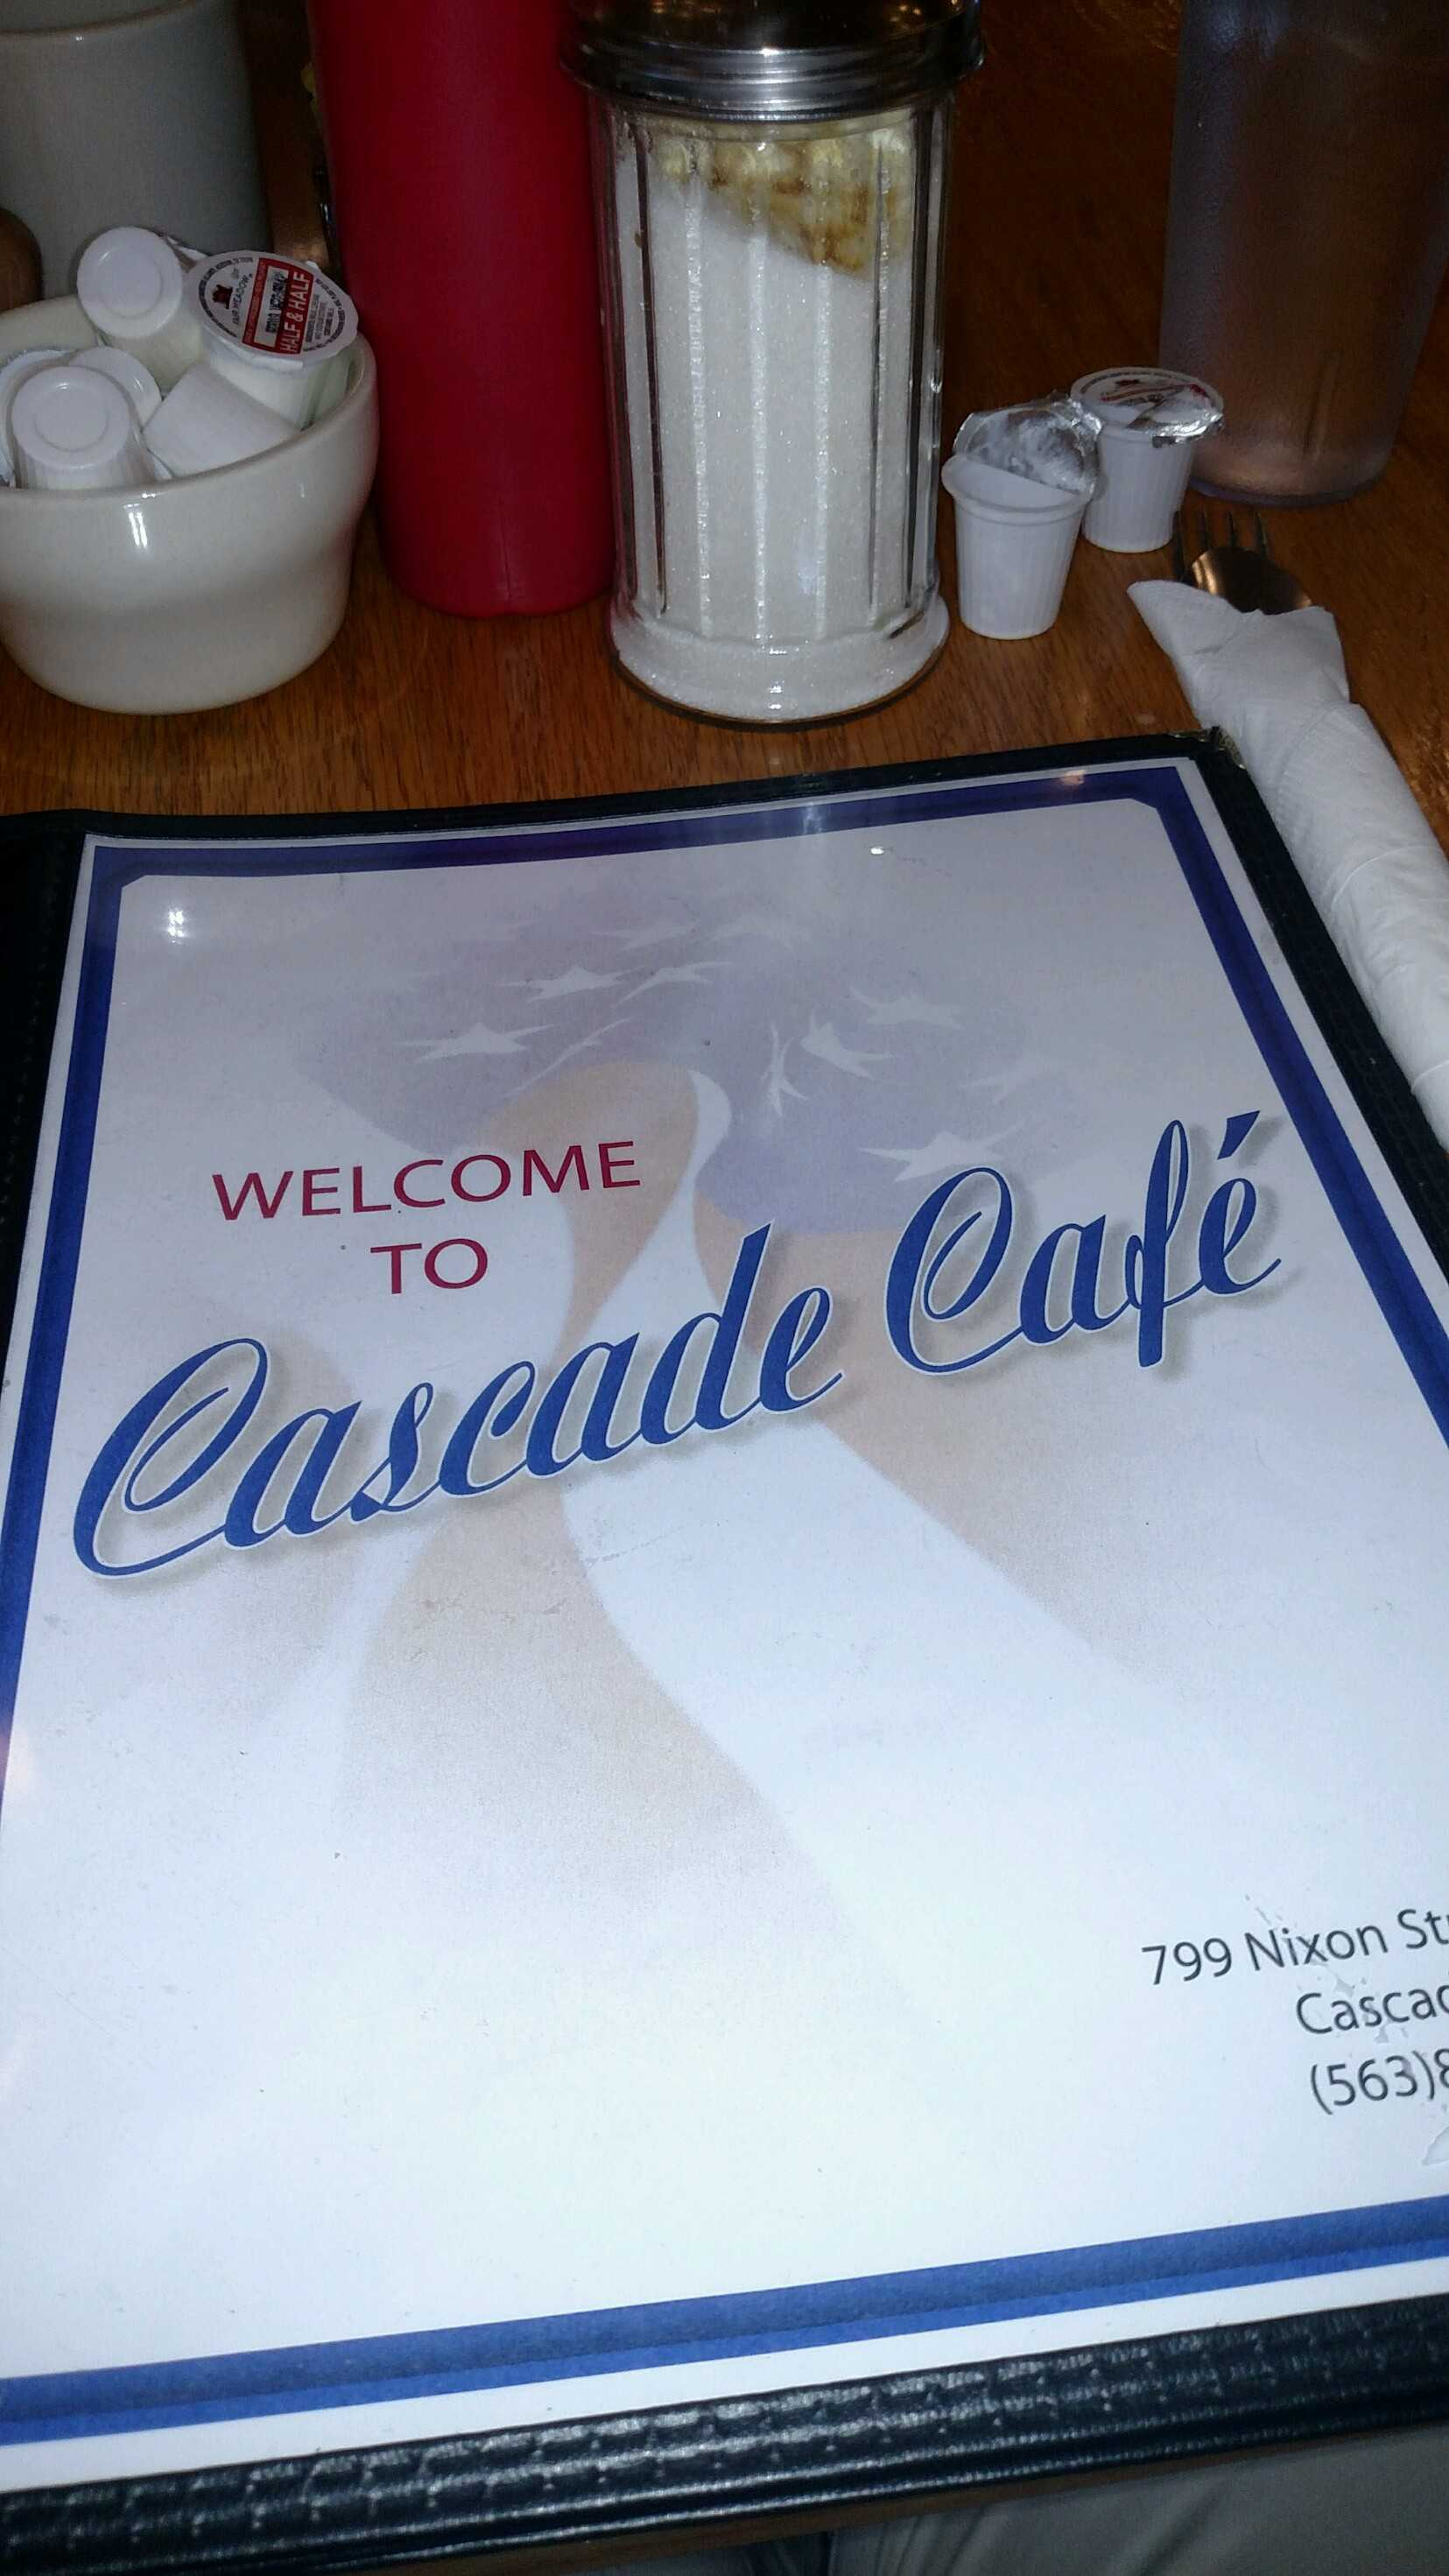 Cascade Cafe Menu